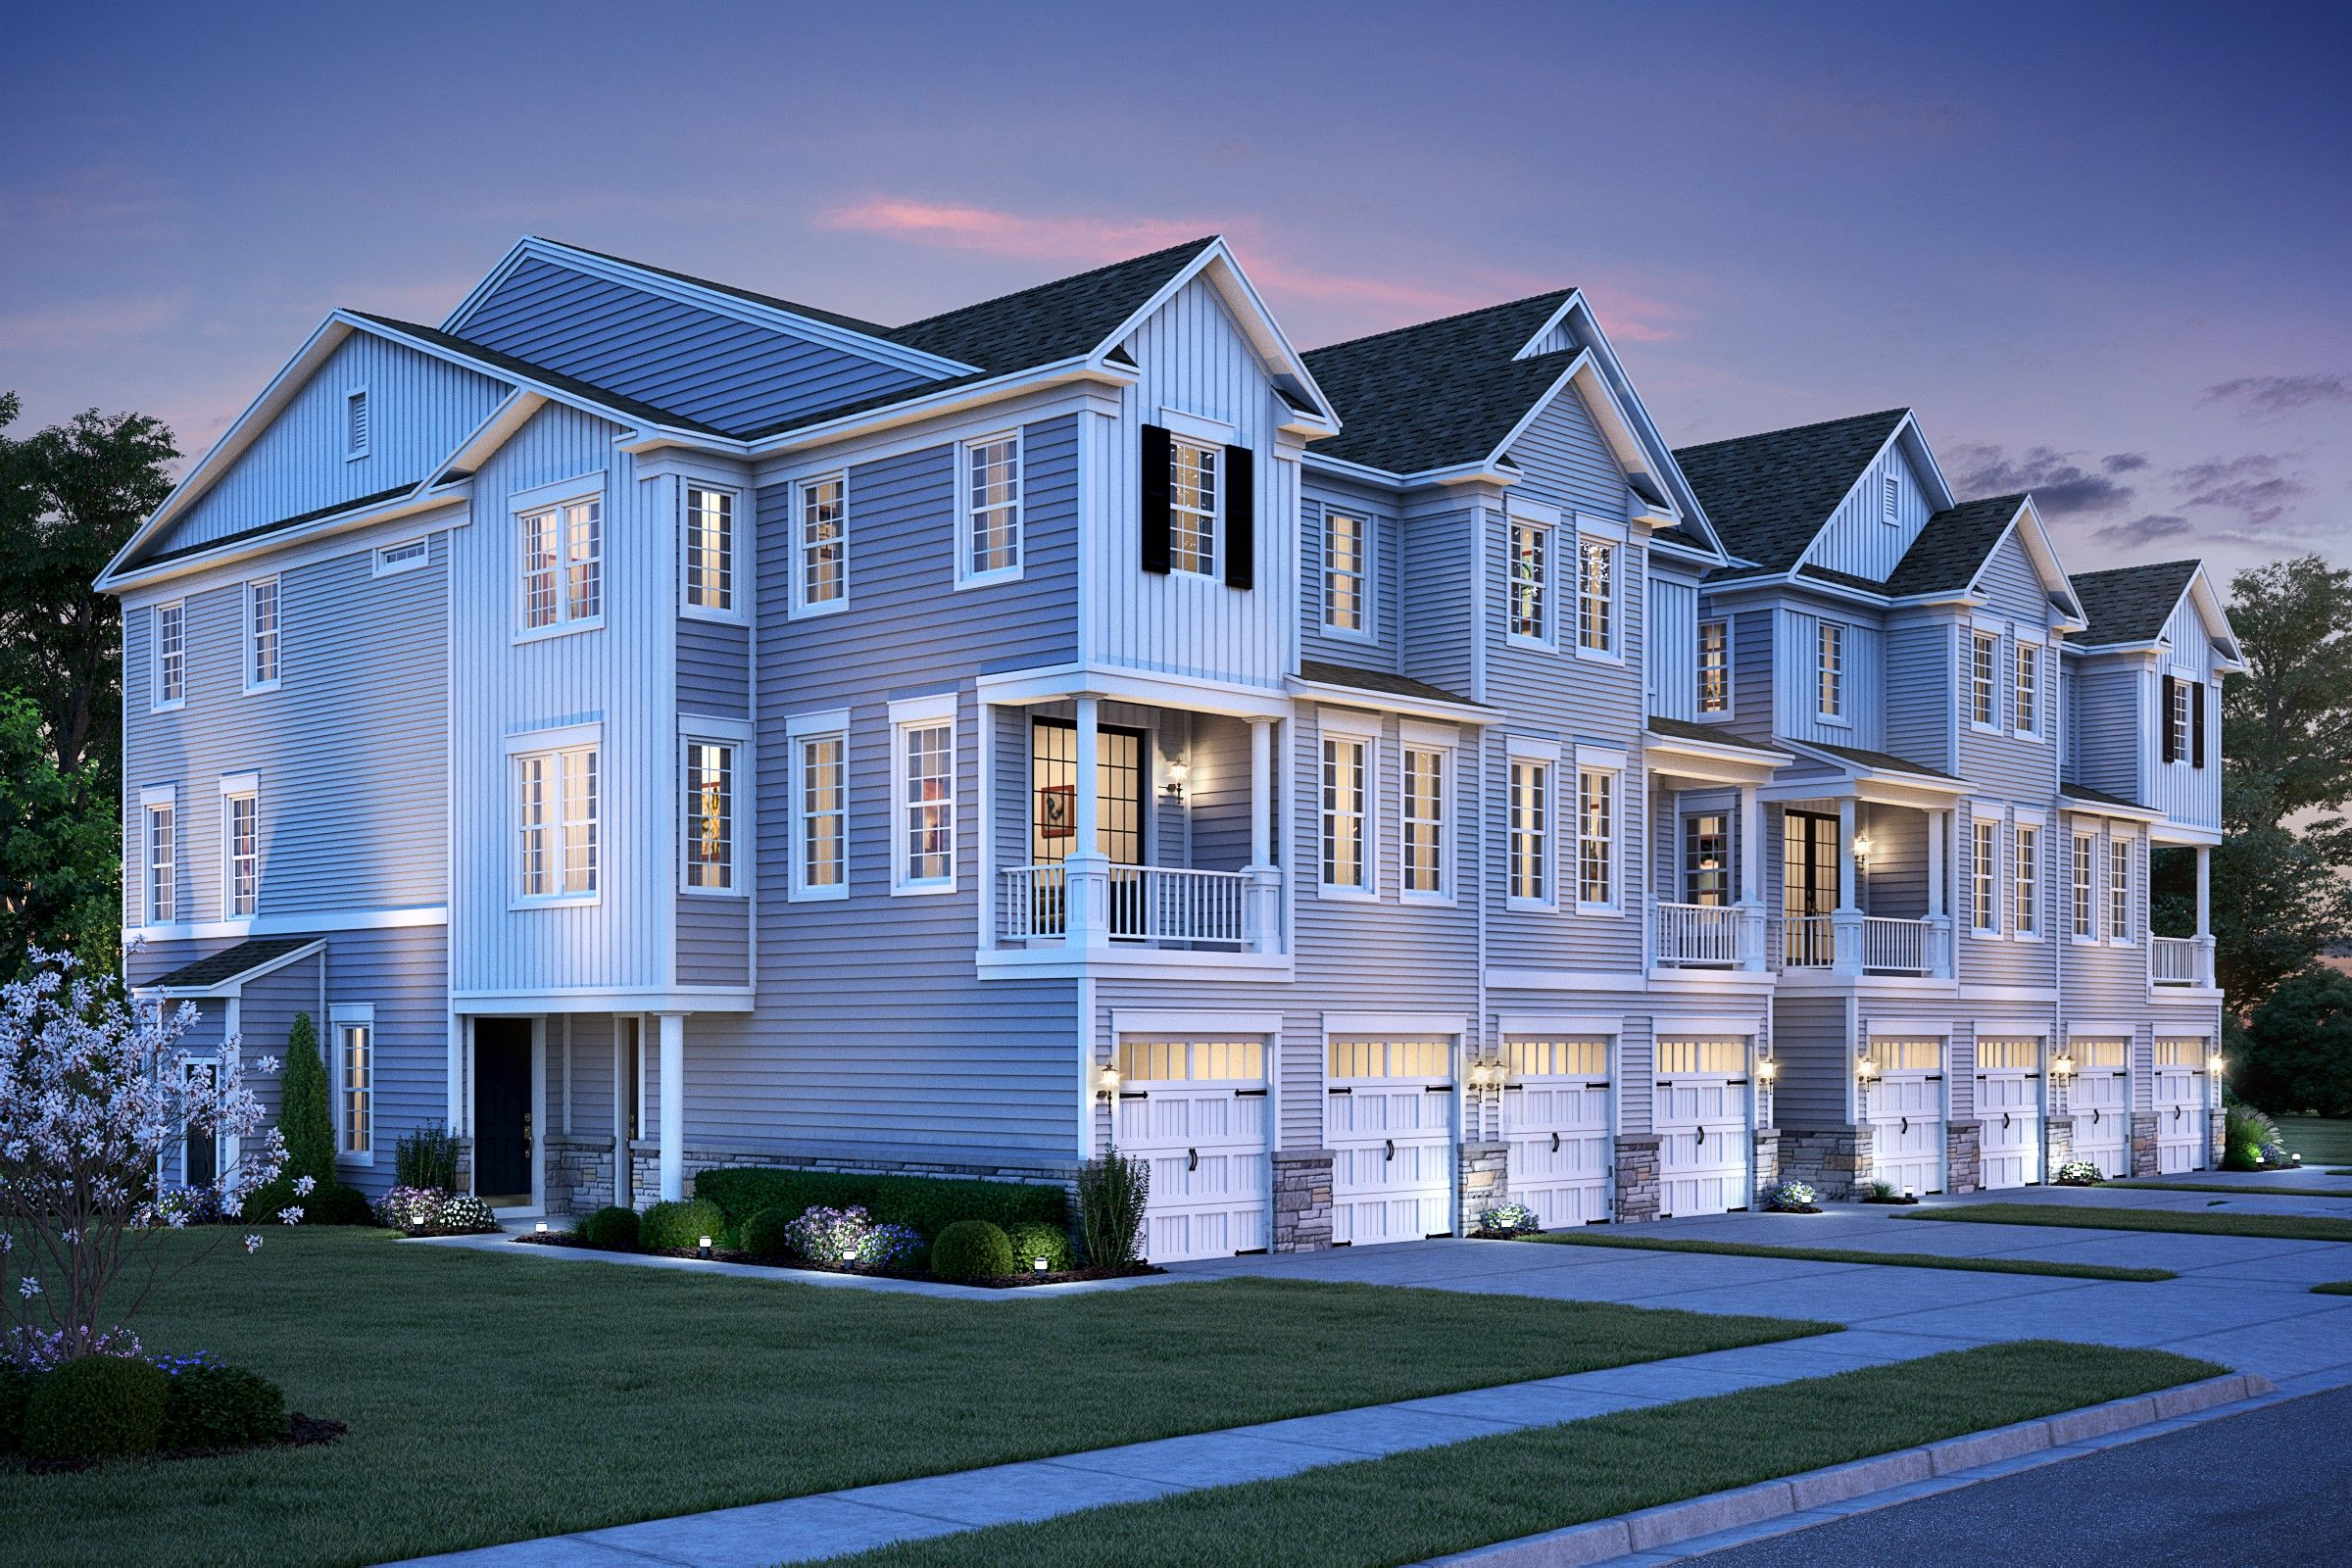 Single Family for Sale at Meadow Brook At Hillsborough - Yale Ii Passe Court Hillsborough, New Jersey 08844 United States